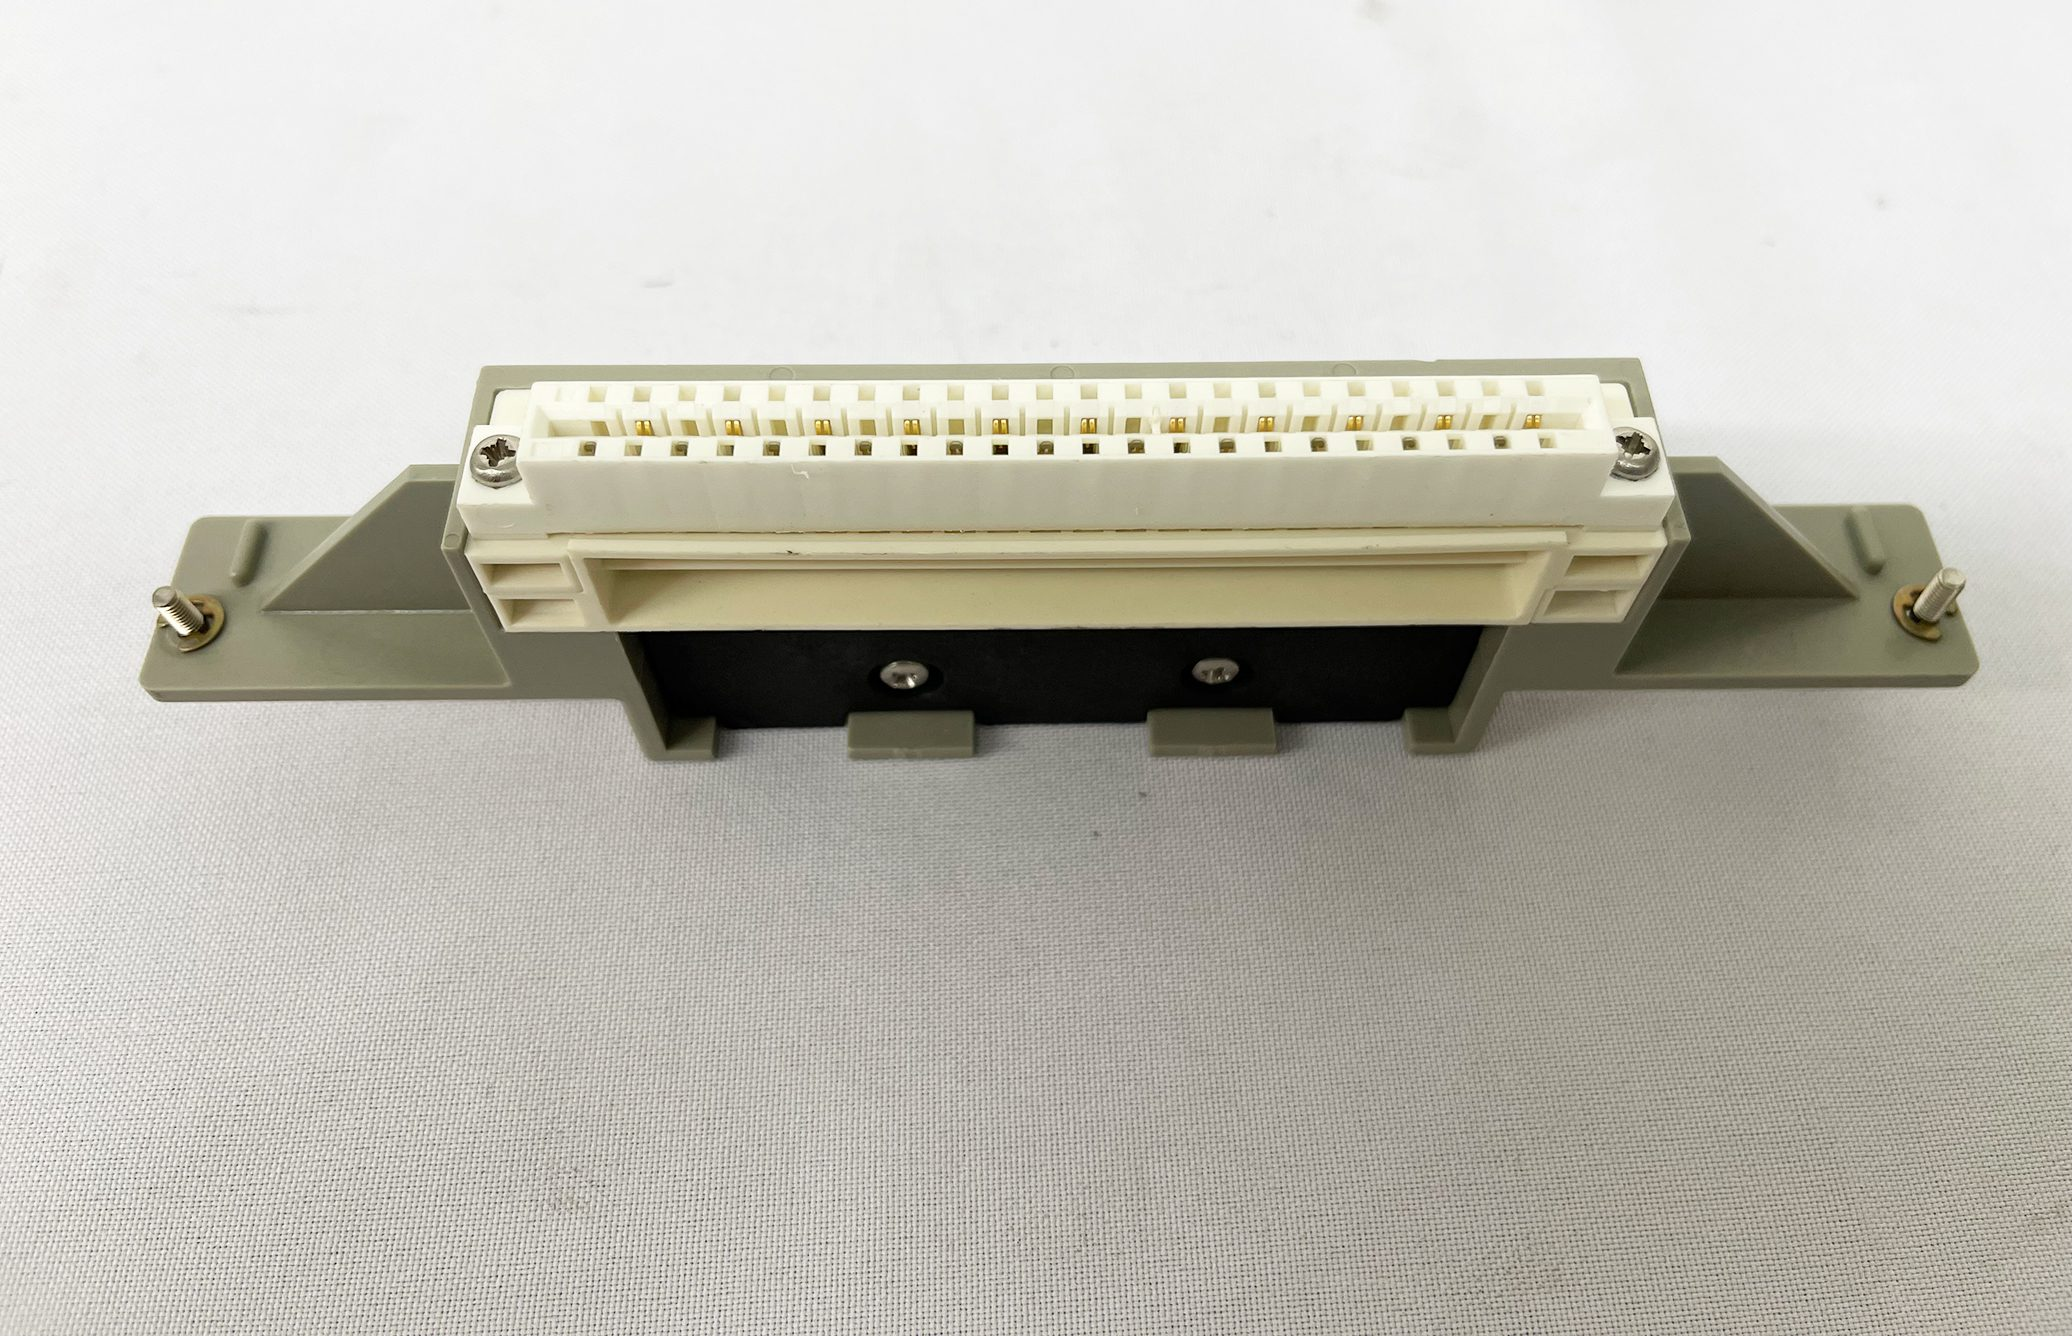 Agilent-44491 A-General Purpose Relay-60000 For Sale